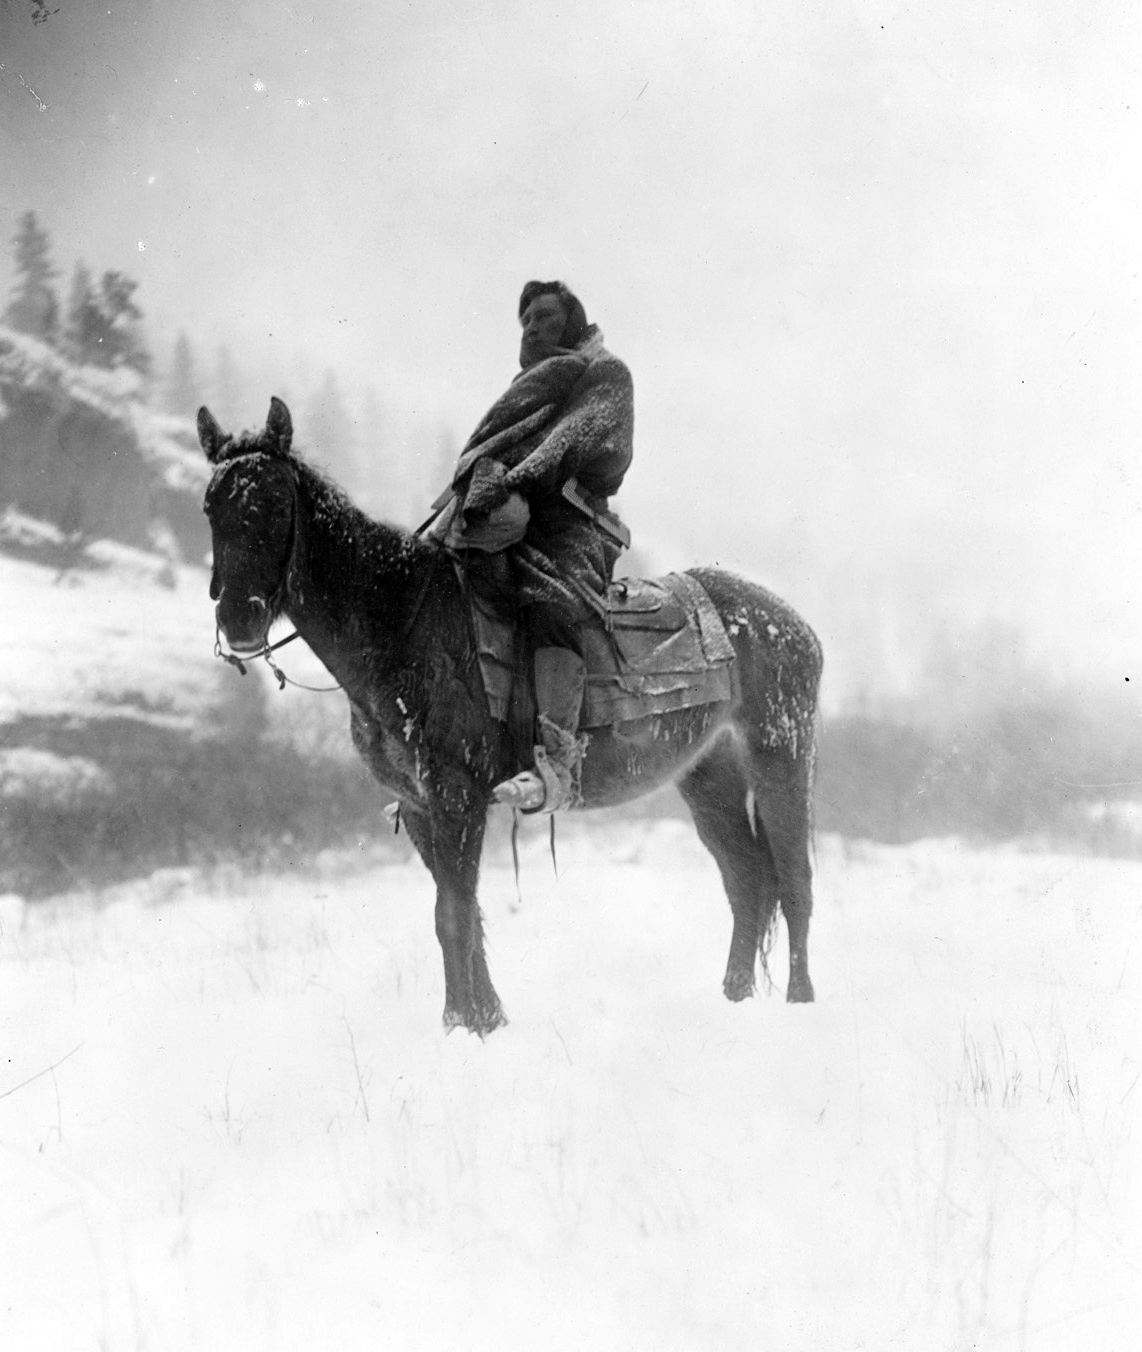 """The Scout in Winter—Apsaroke,"" 1908. Photograph by Edward S. Curtis. United States Library of Congress, Prints and Photographs Division, Washington D.C."